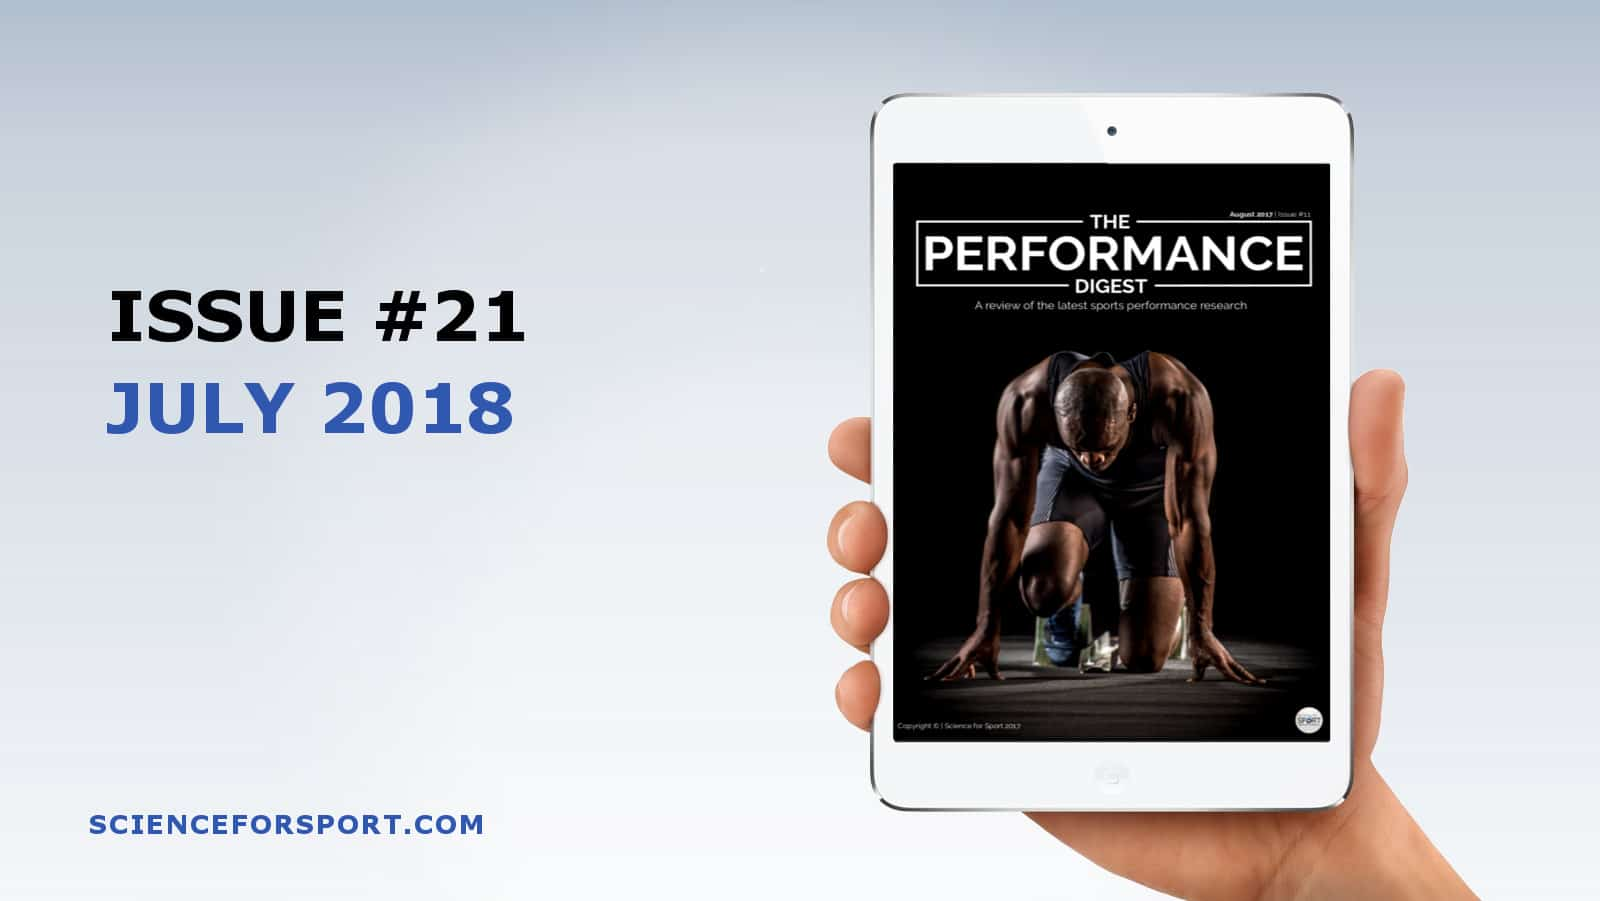 Performance Digest - July 2018 - Science for Sport